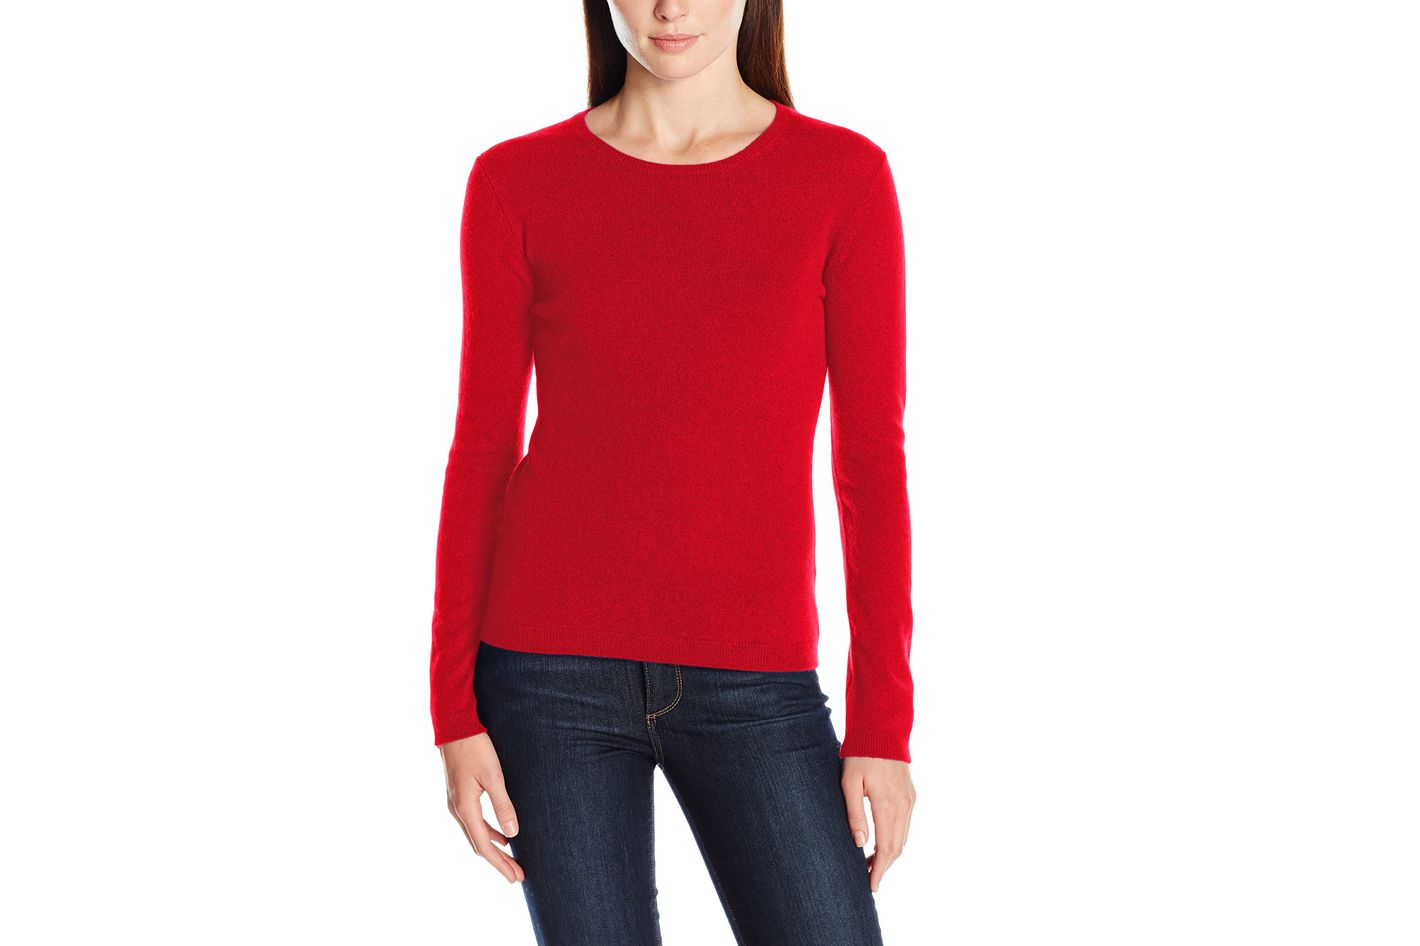 9 Best Thin Sweaters For Layering Under 100